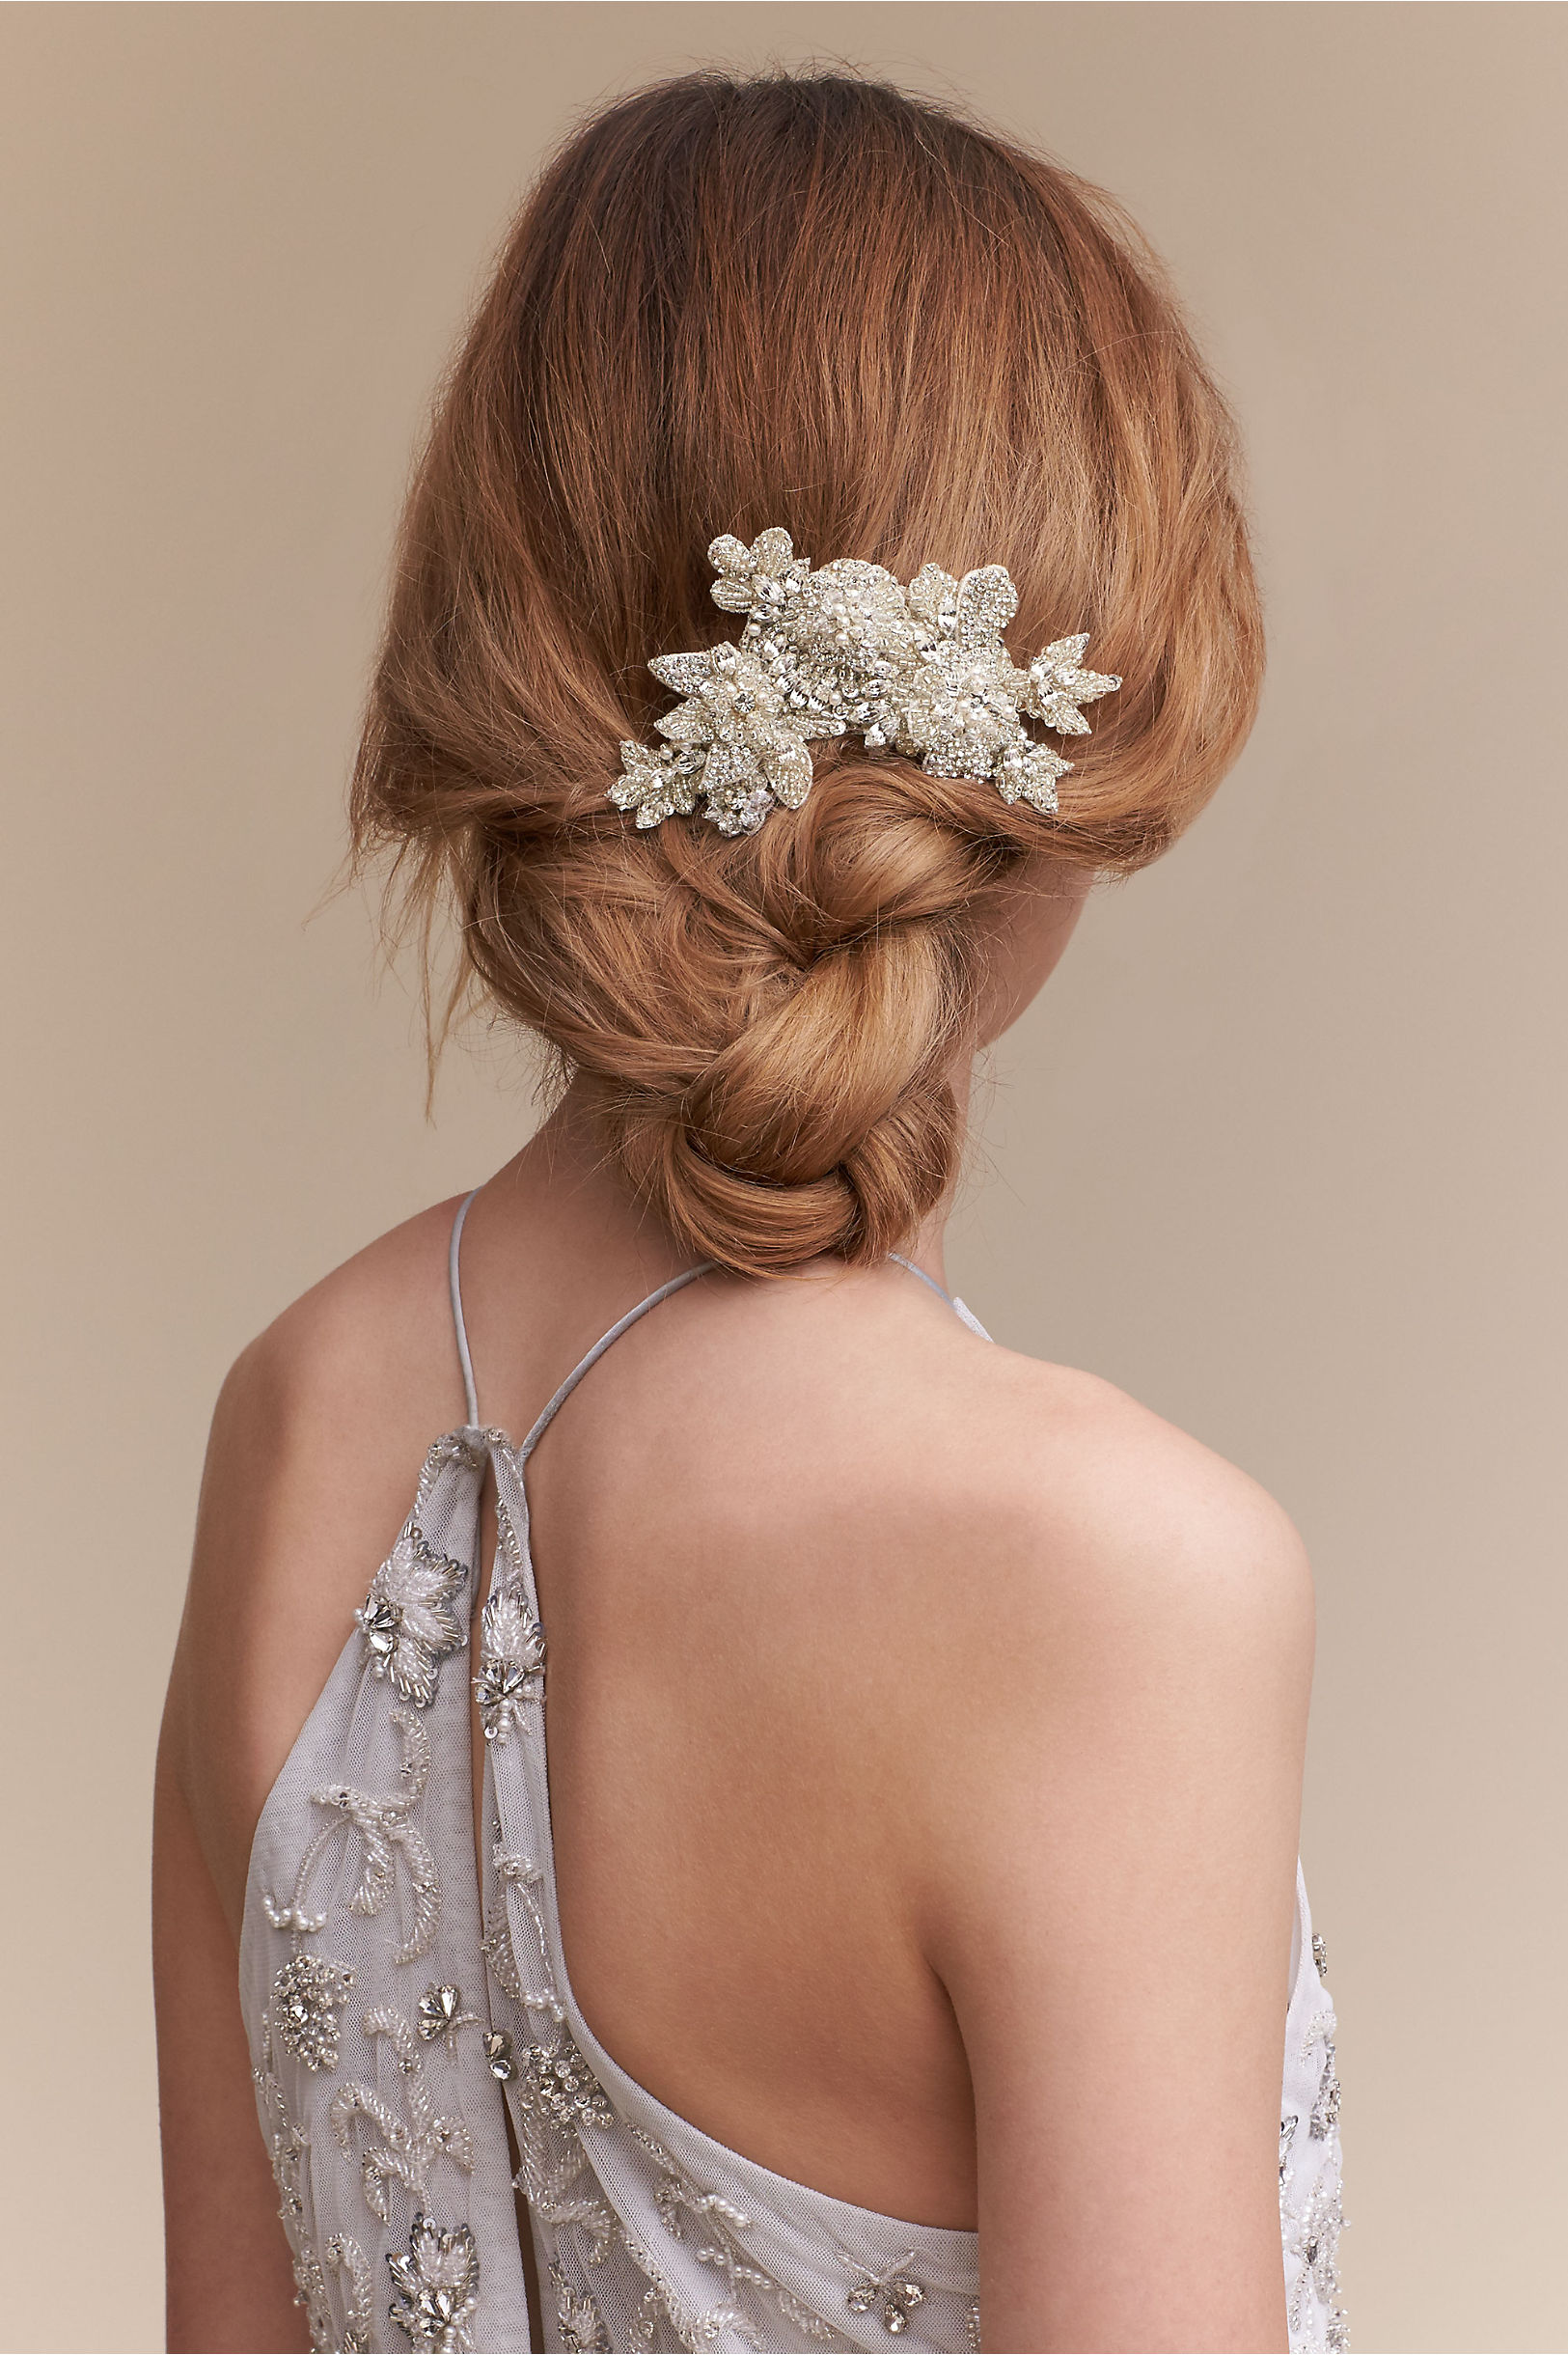 Bridal hair accessories for long hair - Shimmering Blooms Comb